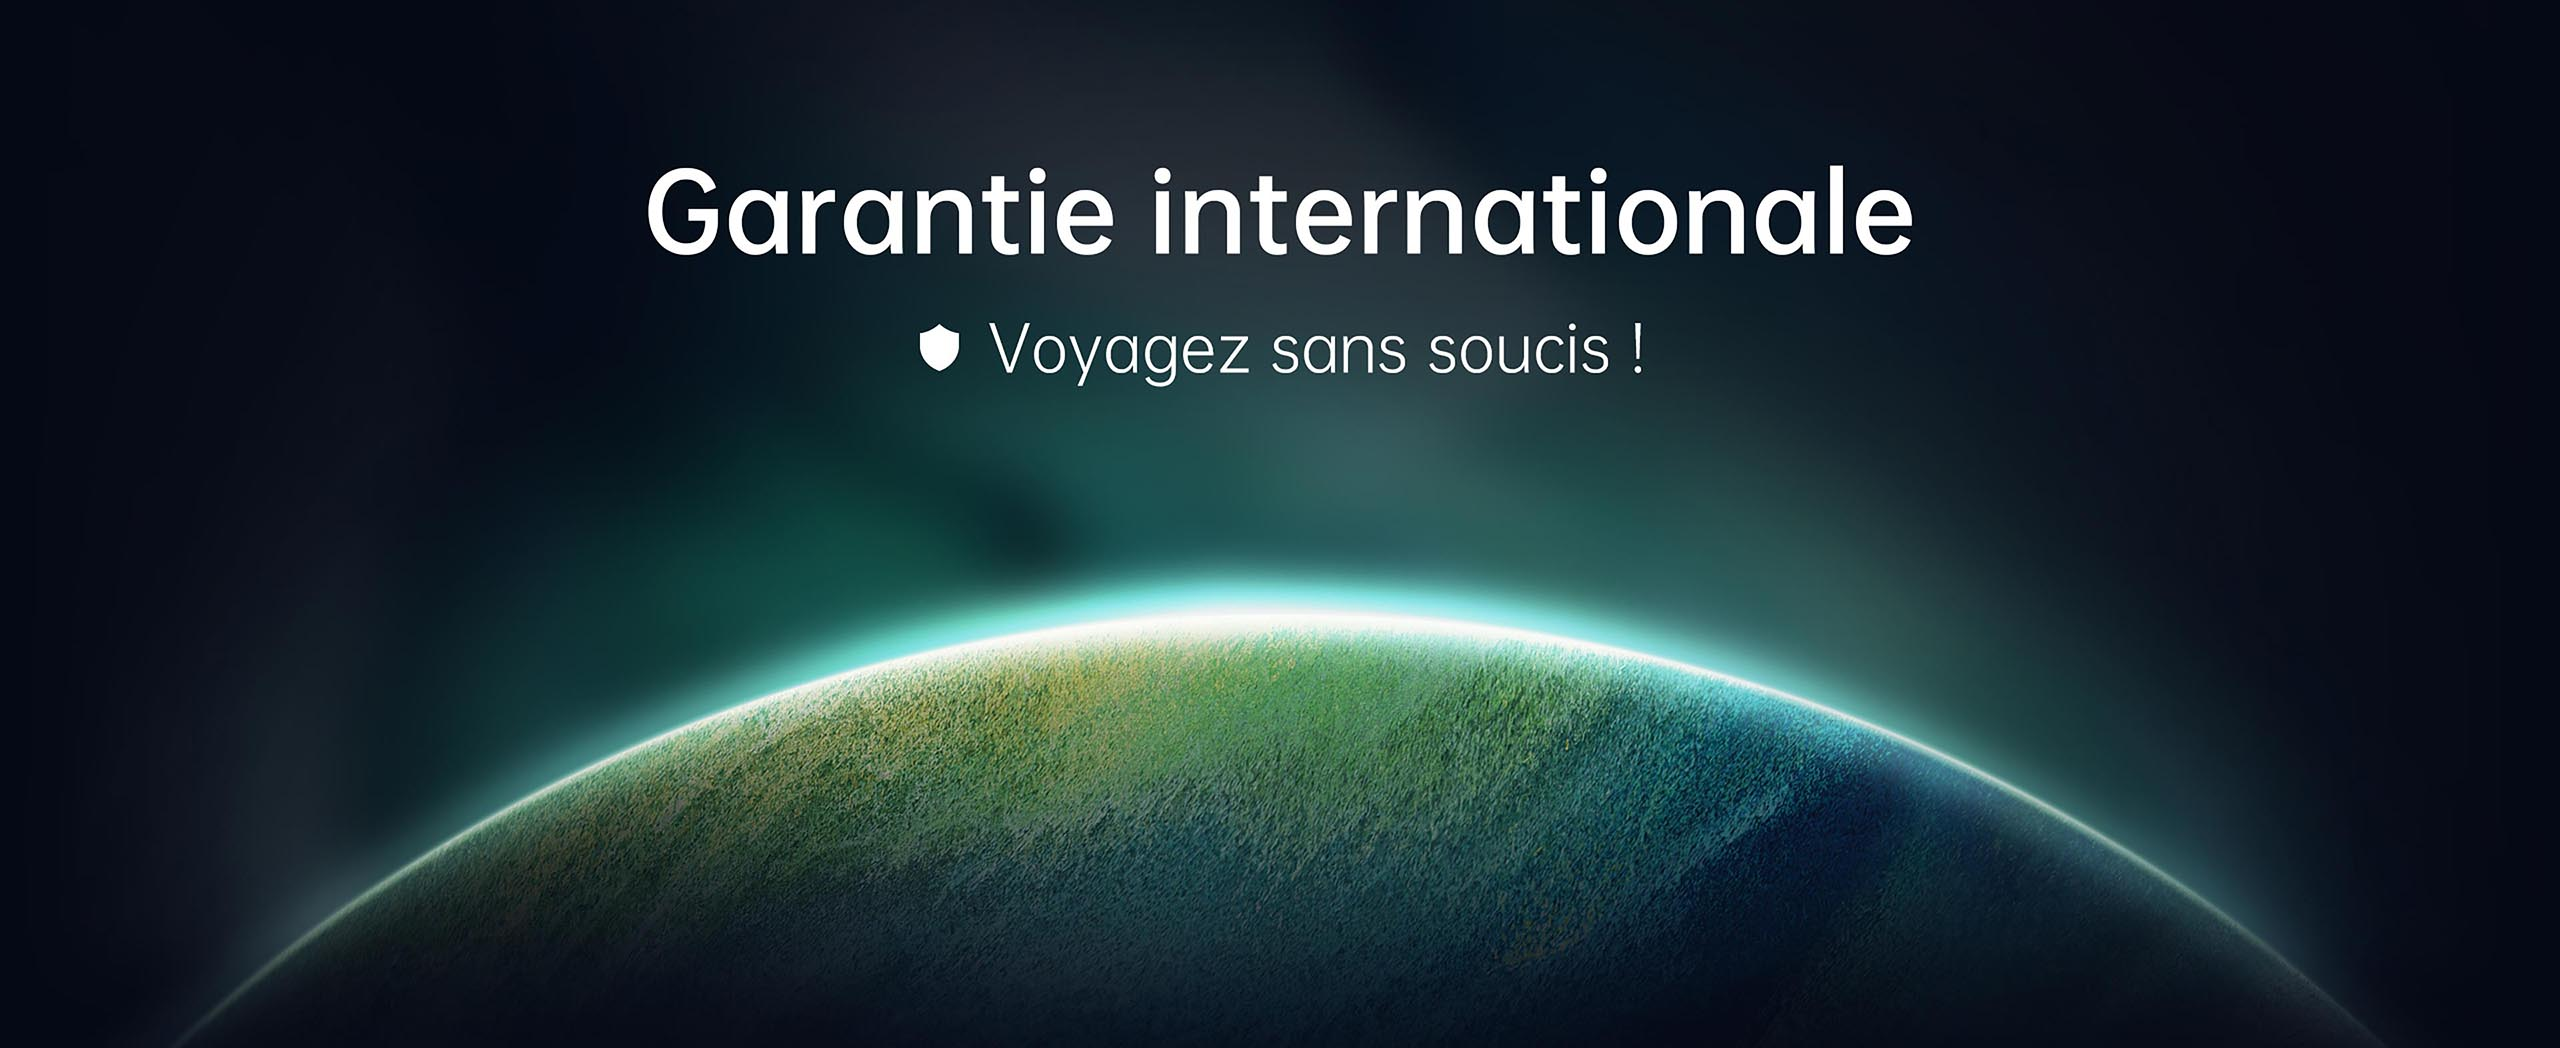 Service de garantie internationale OPPO